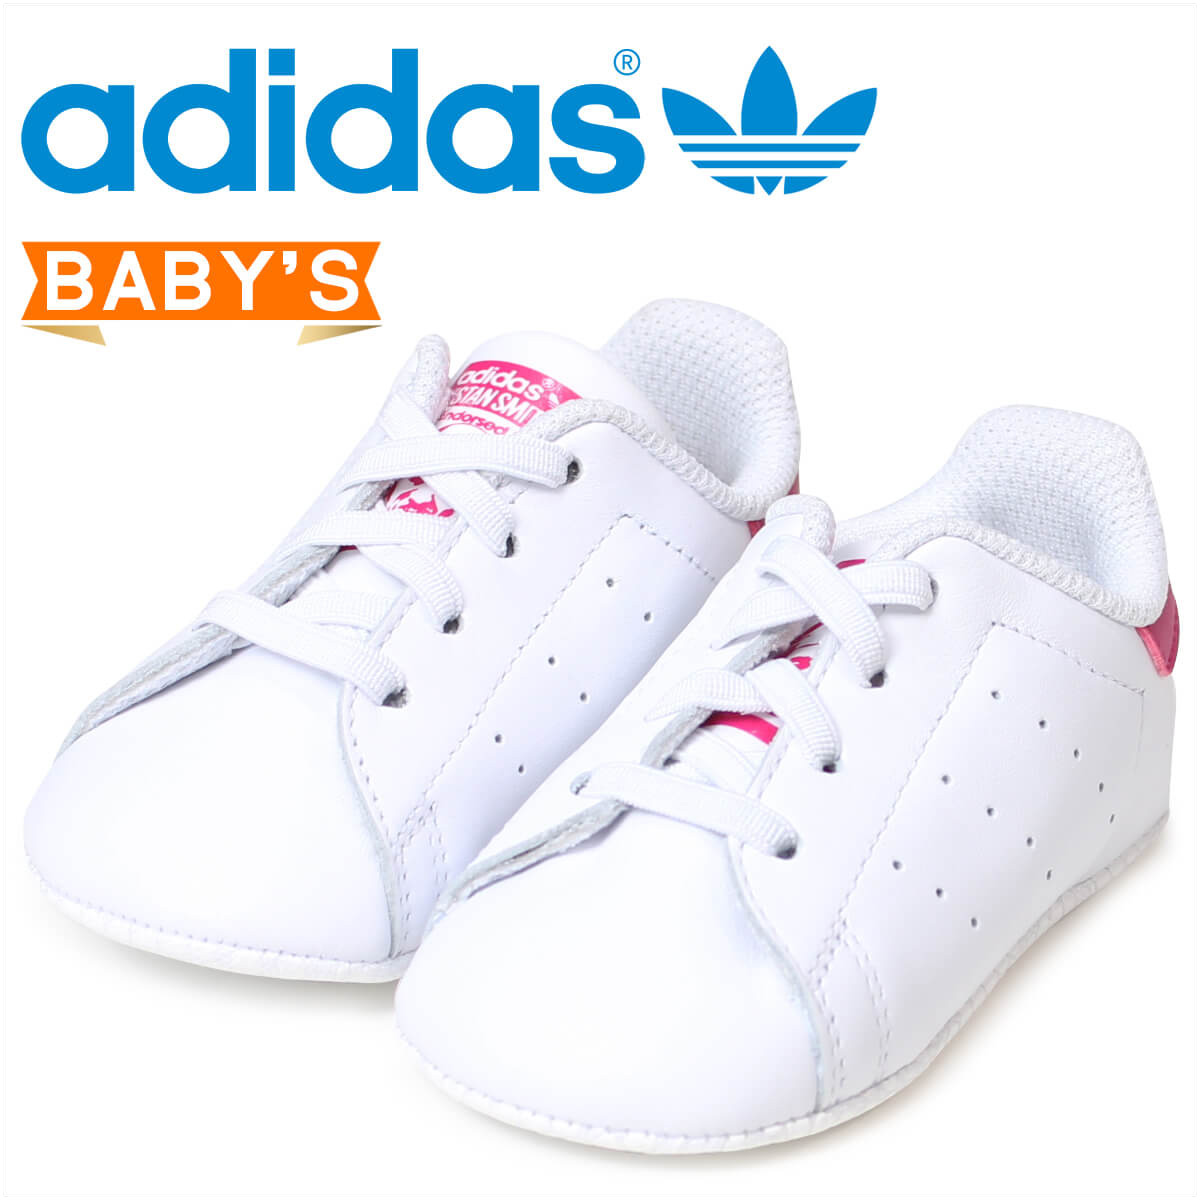 timeless design 82e53 710a0 Adidas Stan Smith baby adidas Originals sneakers STAN SMITH CRIB S82618  shoes white originals [2/8 Shinnyu load]